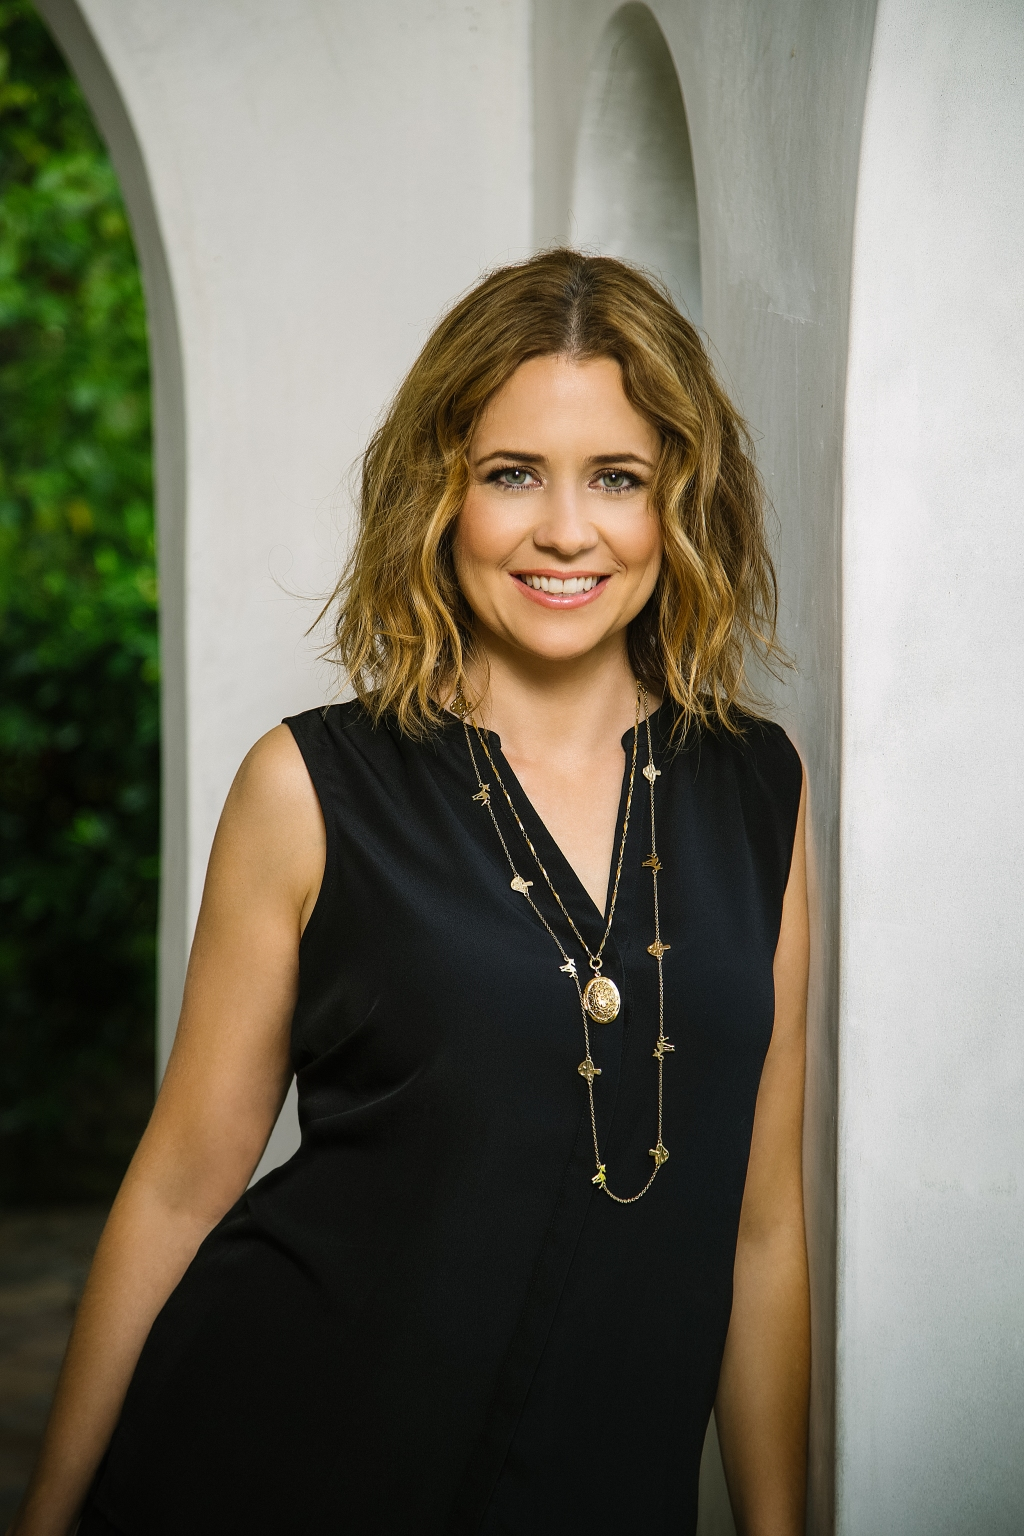 18 Year Old Jenna Porn jenna fischer on 'the actor's life' – master chat